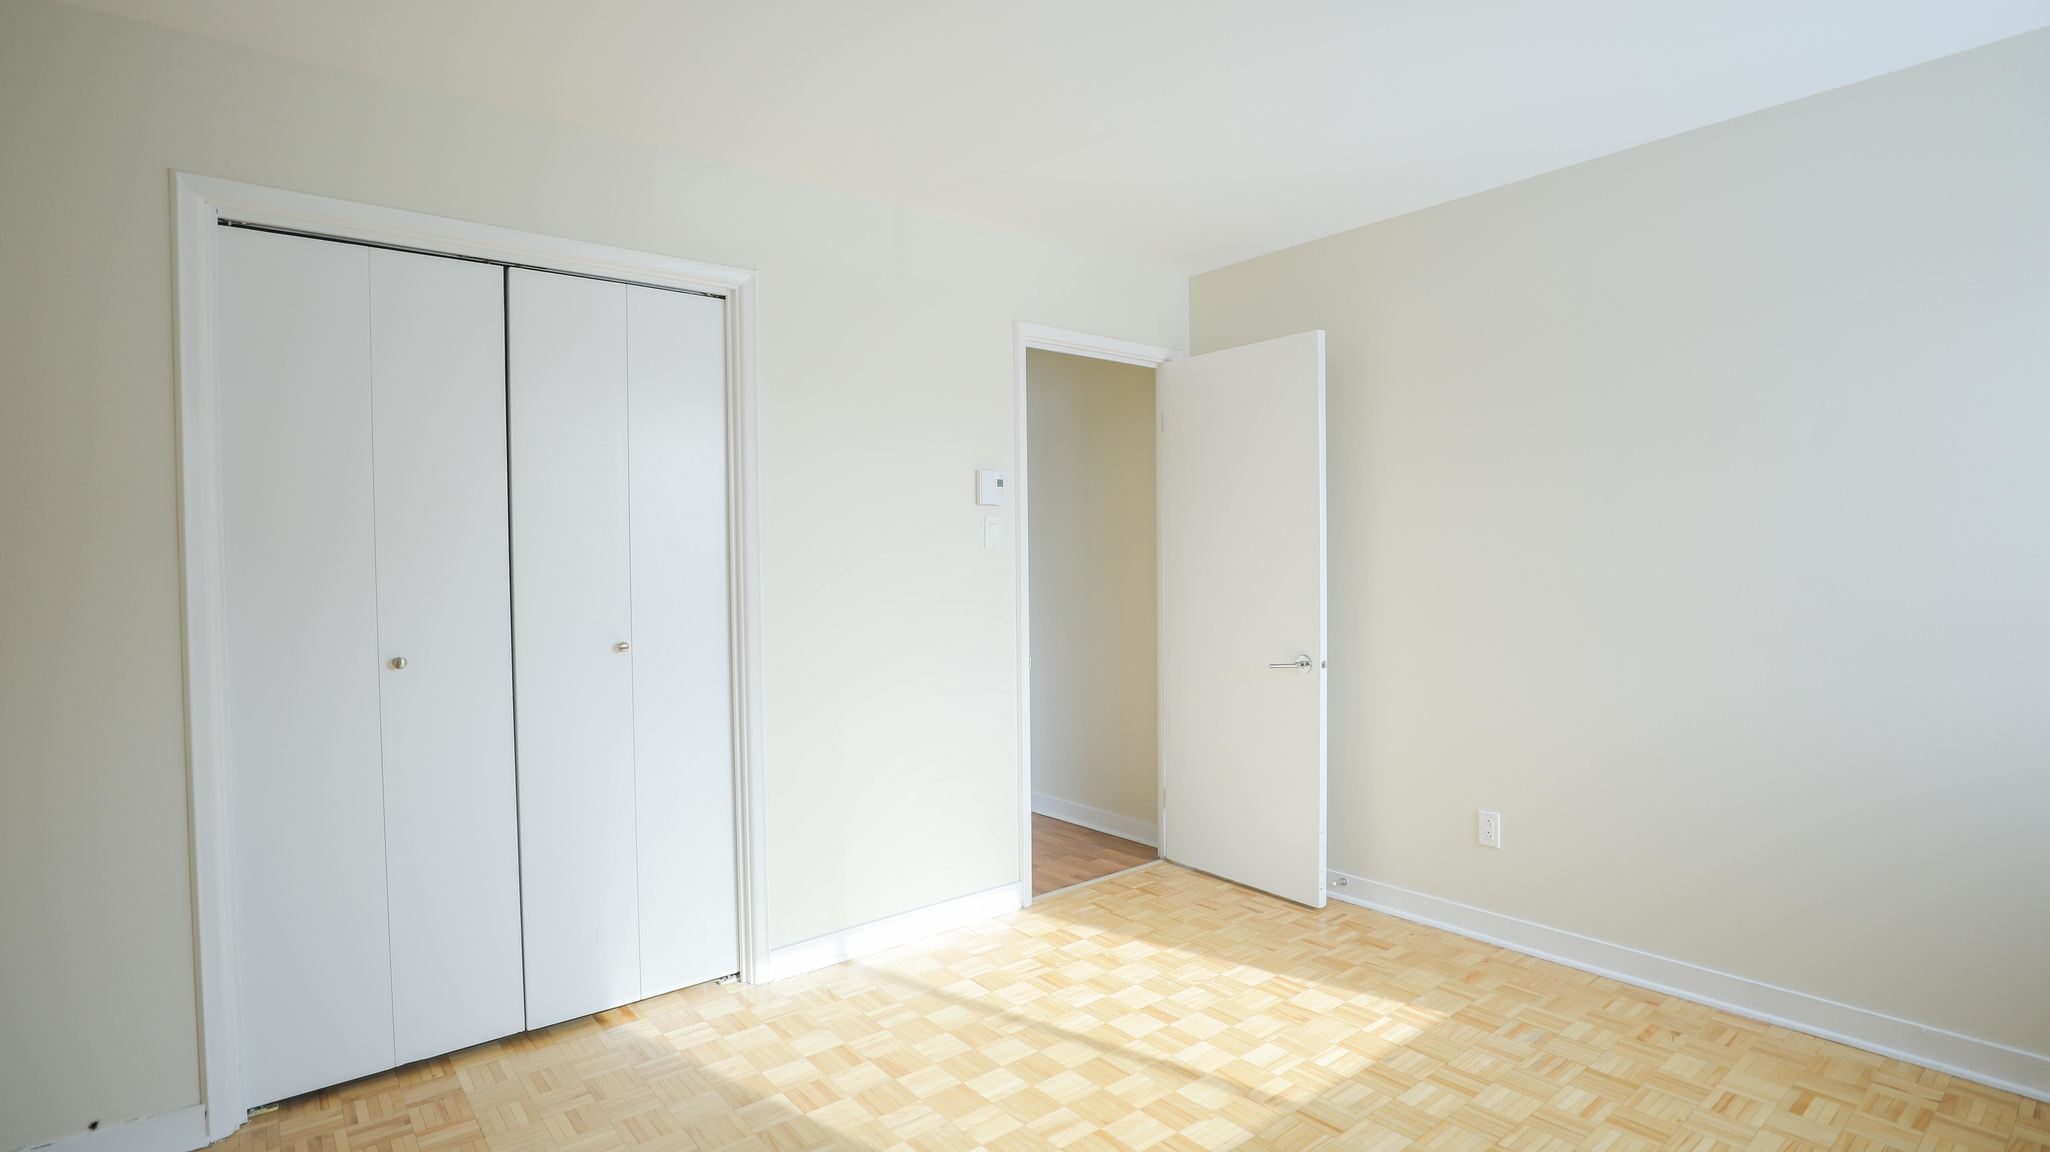 1 bedroom Apartments for rent in Quebec City at Place Charlesbourg - Photo 14 - RentersPages – L407126